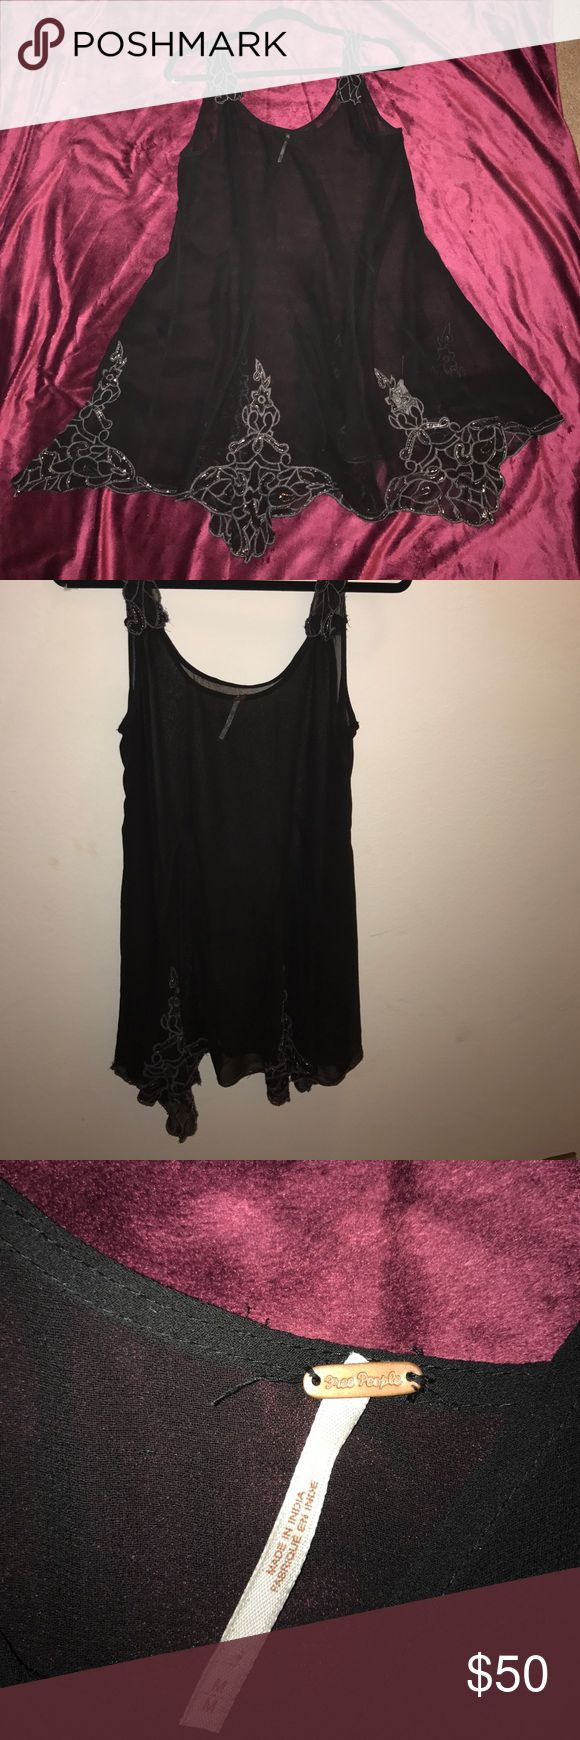 Free People Sheer Beaded Dress Worn once for a sorority formal. Black beaded sheer Free People dress is beautiful. Hate to part with it but I know someone else will enjoy it! Very sheer, a slip is definitely recommended if not required. Free People Dresses